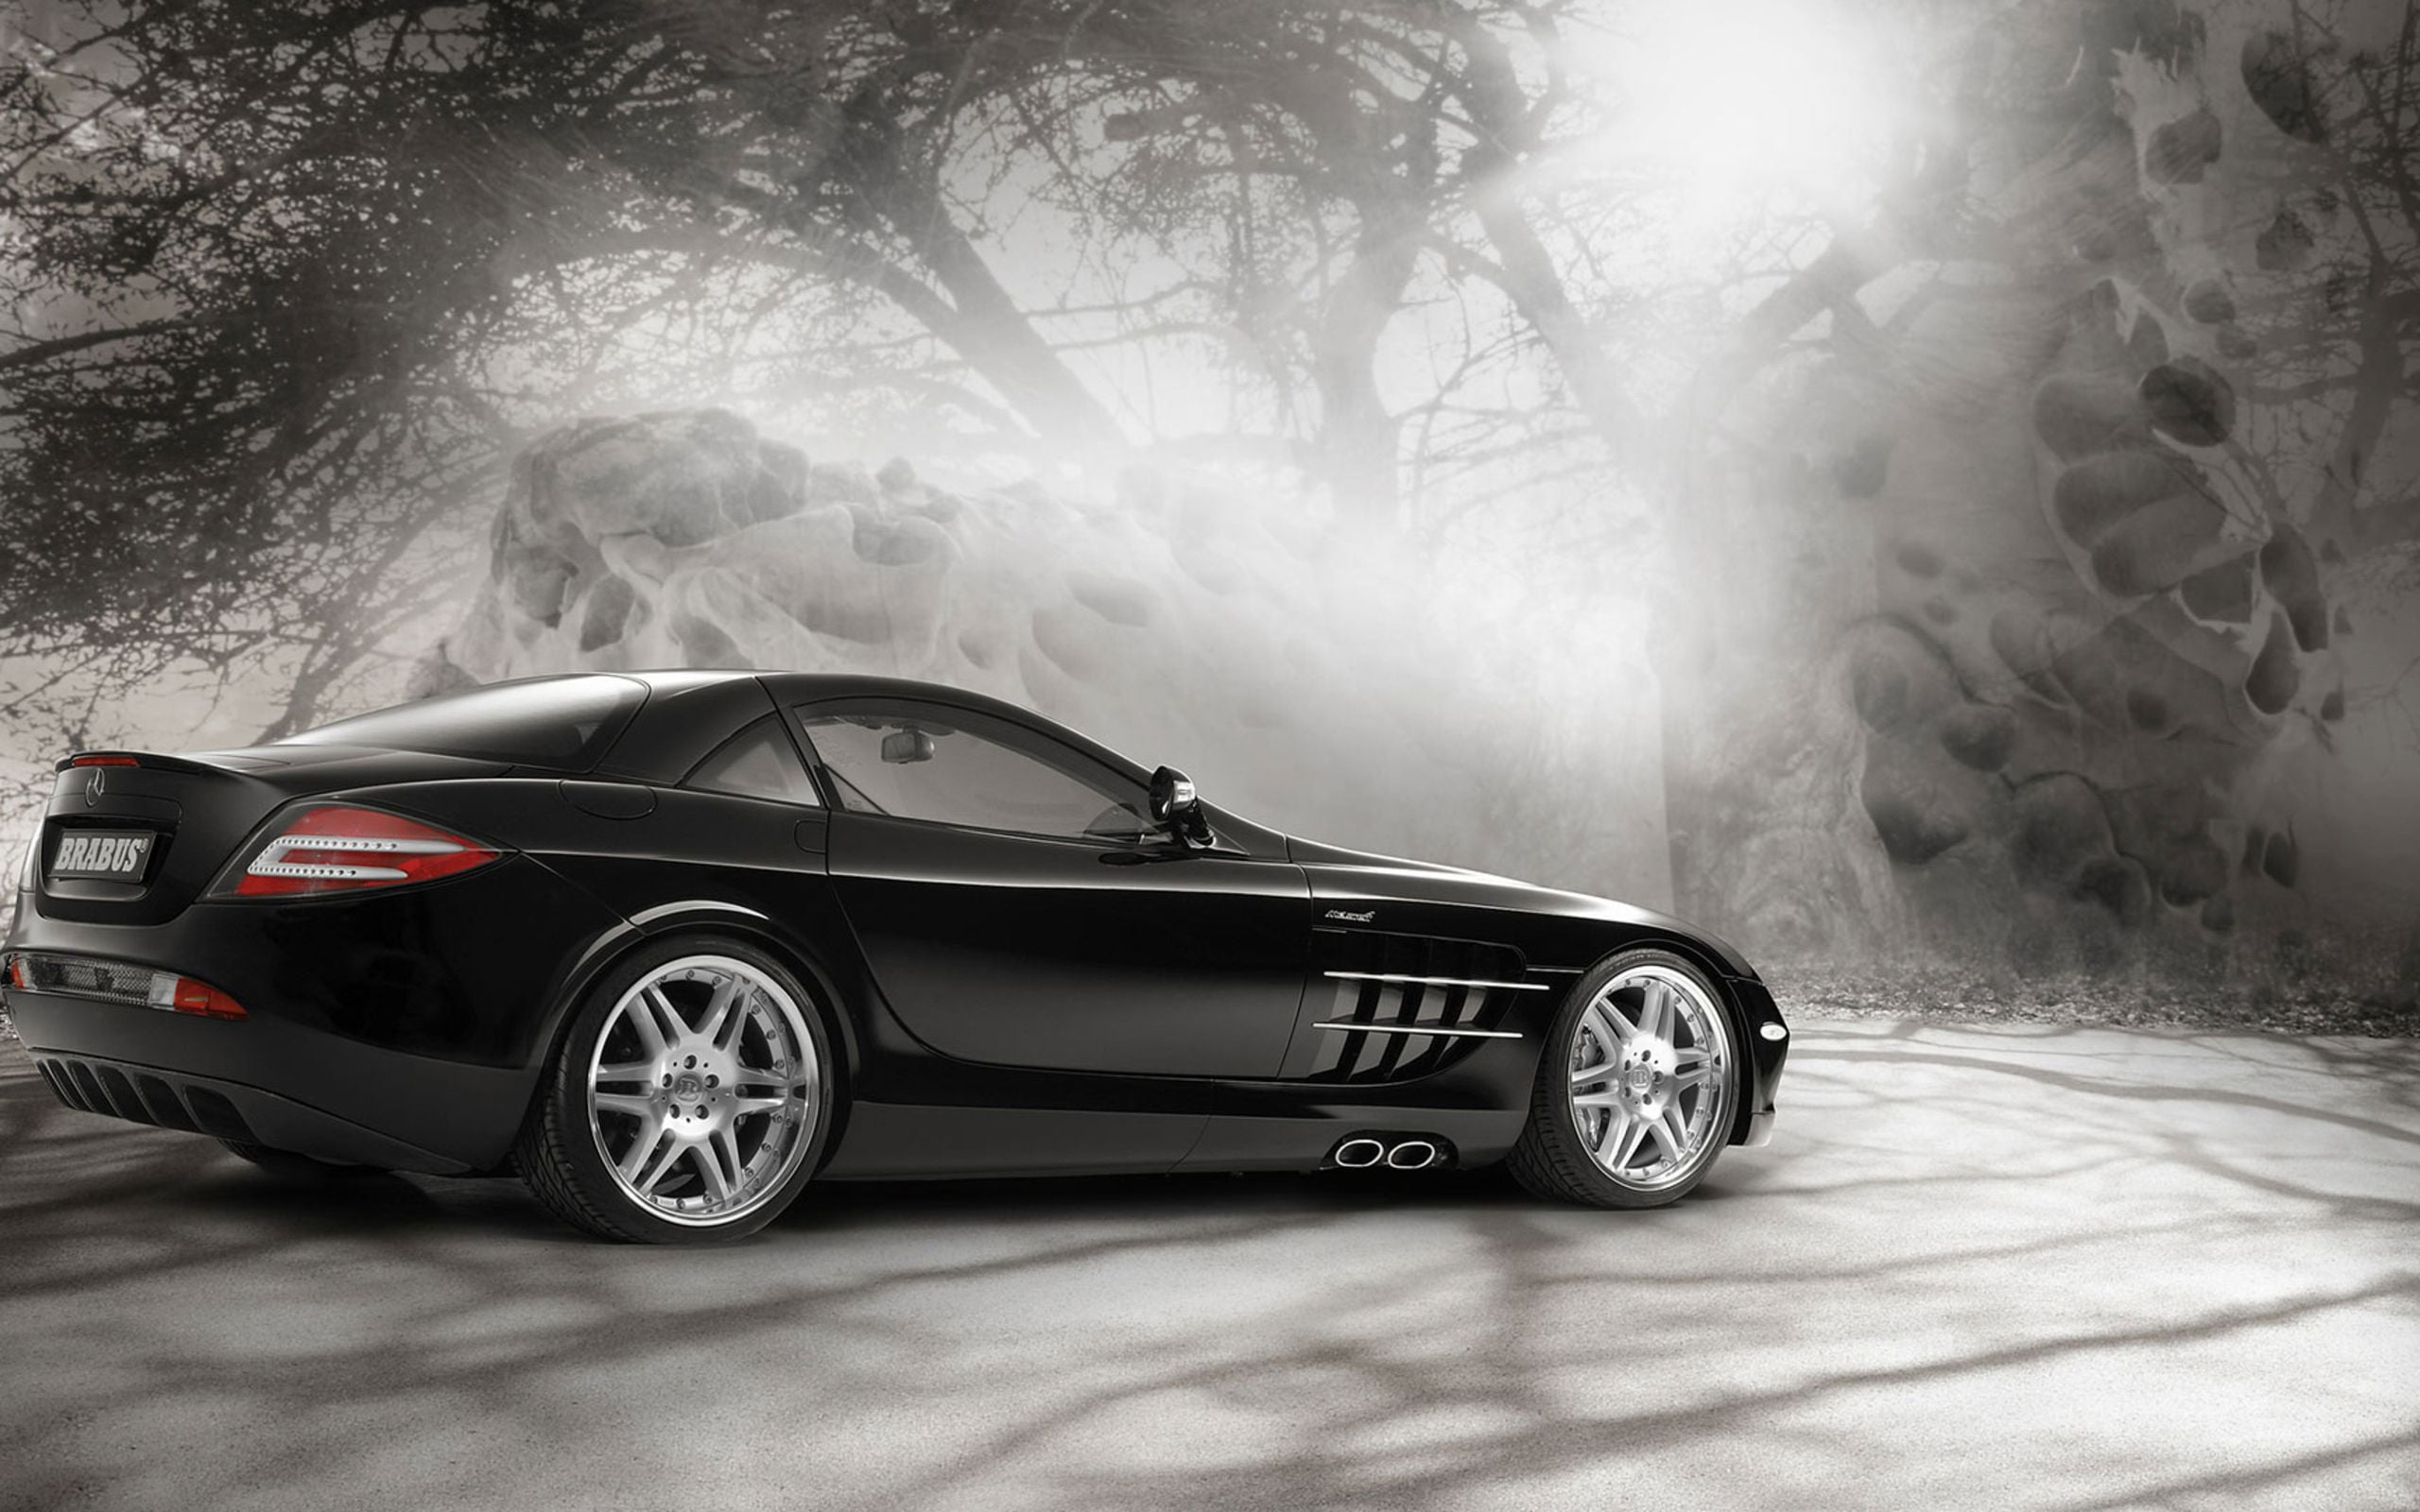 mercedes slr mclaren wallpapers hd download. Black Bedroom Furniture Sets. Home Design Ideas